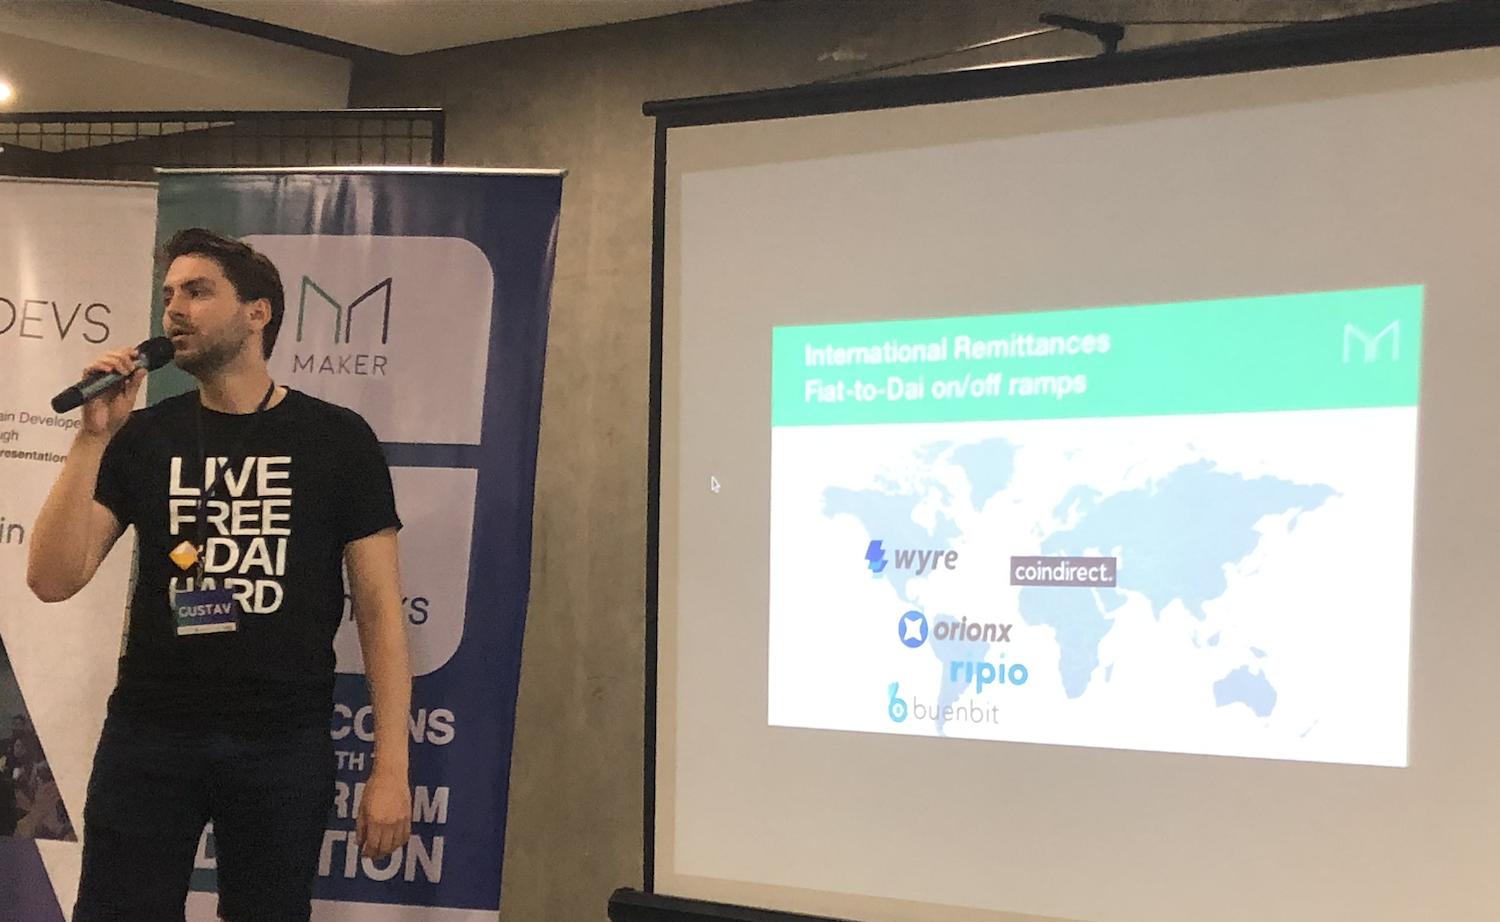 Maker representatives around the world educate crypto event attendees on the cheapest way to transfer money internationally.